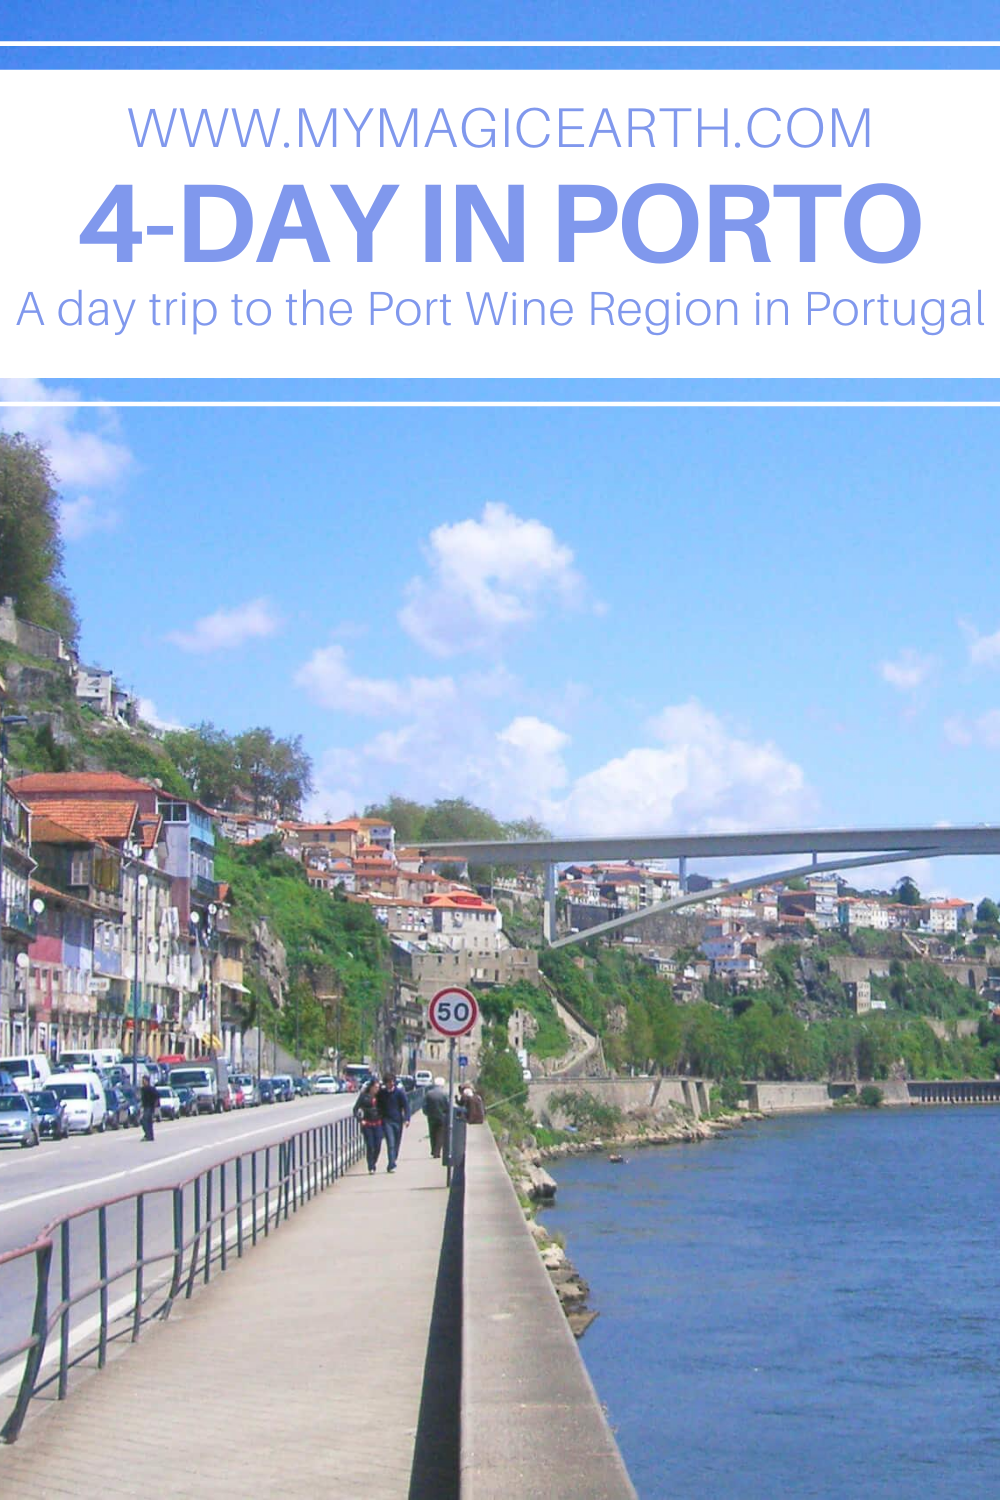 Porto is a famous Port Wine town with rich history. This post is about how I discovered Porto in 4 days including the Duoro Vally, wine tasting, and the remote North of Porto. #portugal #europe #village #destination #adventure #porto #city #adventuretime #traveltips #travelblog #travellife#Porto #portugal #daytrips #portwine #葡萄牙 #itineray #porto #traveltips #travelblogger #weekendtrip #roadtrip #thingstodo #familywithkids #familytravel